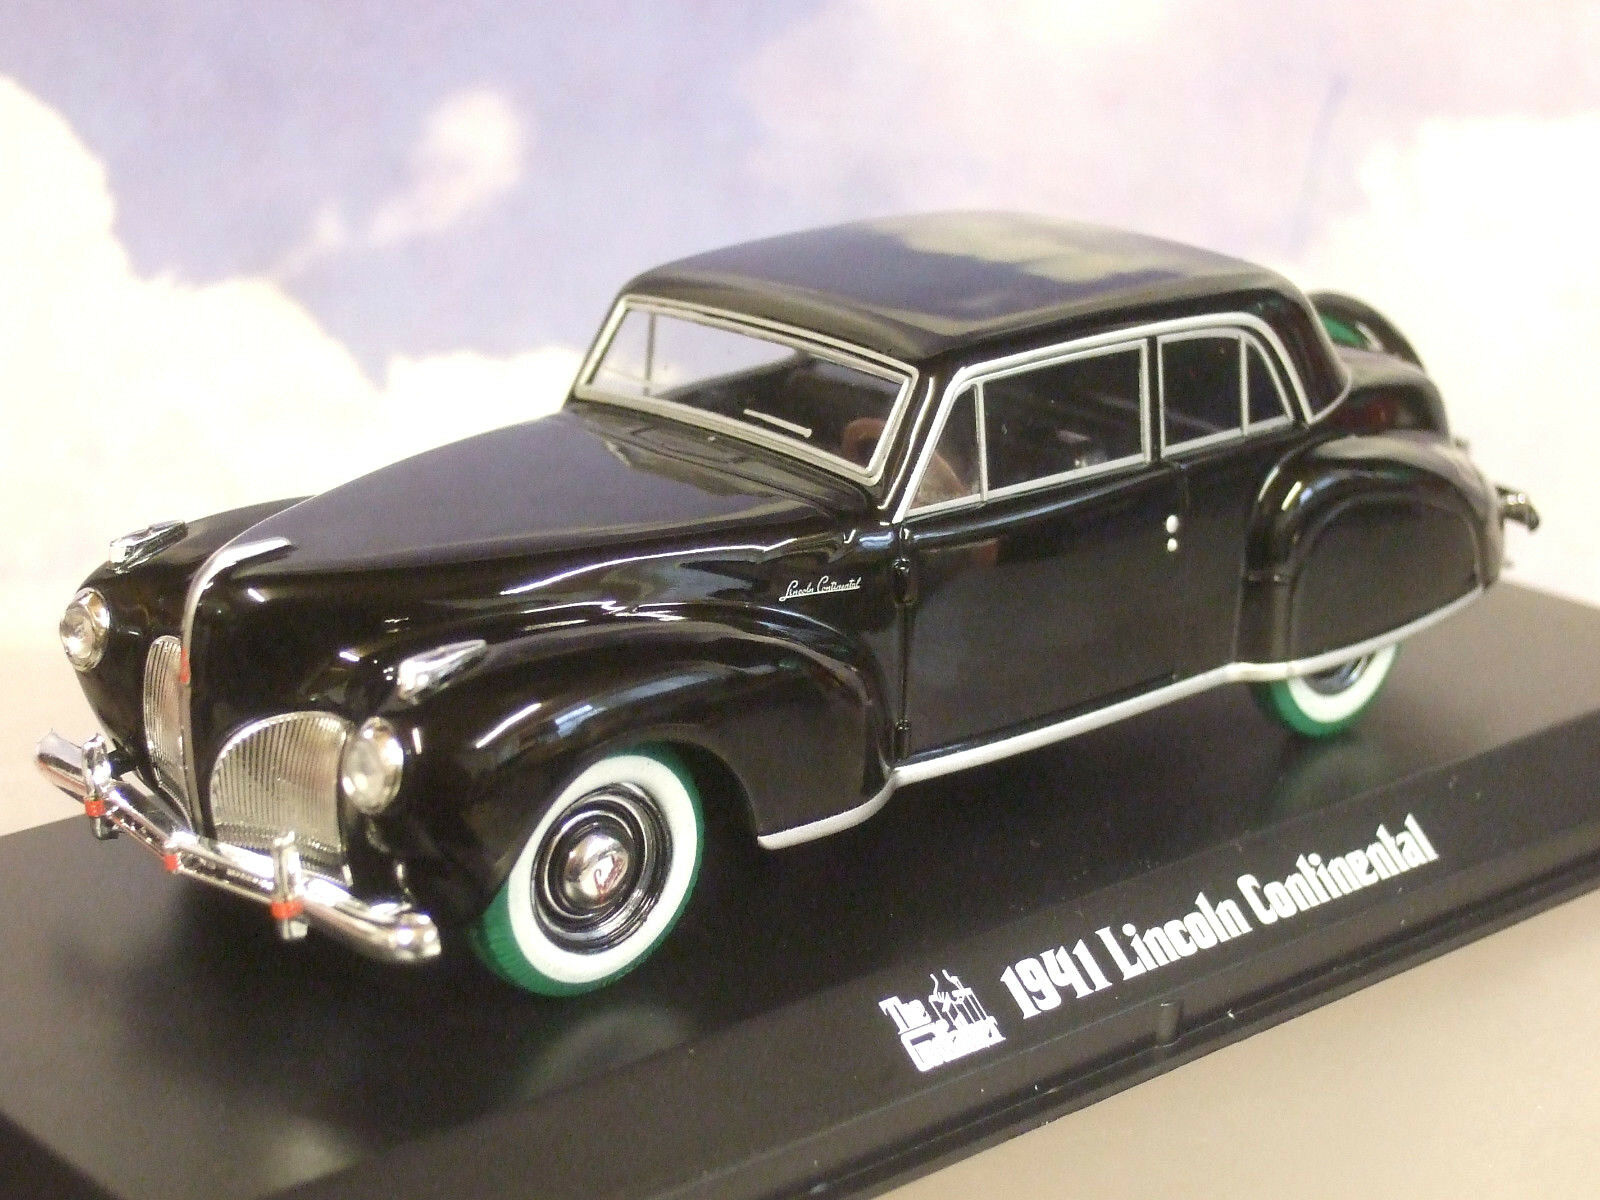 GREENLIGHT 1 43 SONNYS 1941 LINCOLN CONTINENTAL GODFATHER RARE CHASE GREEN TYRES